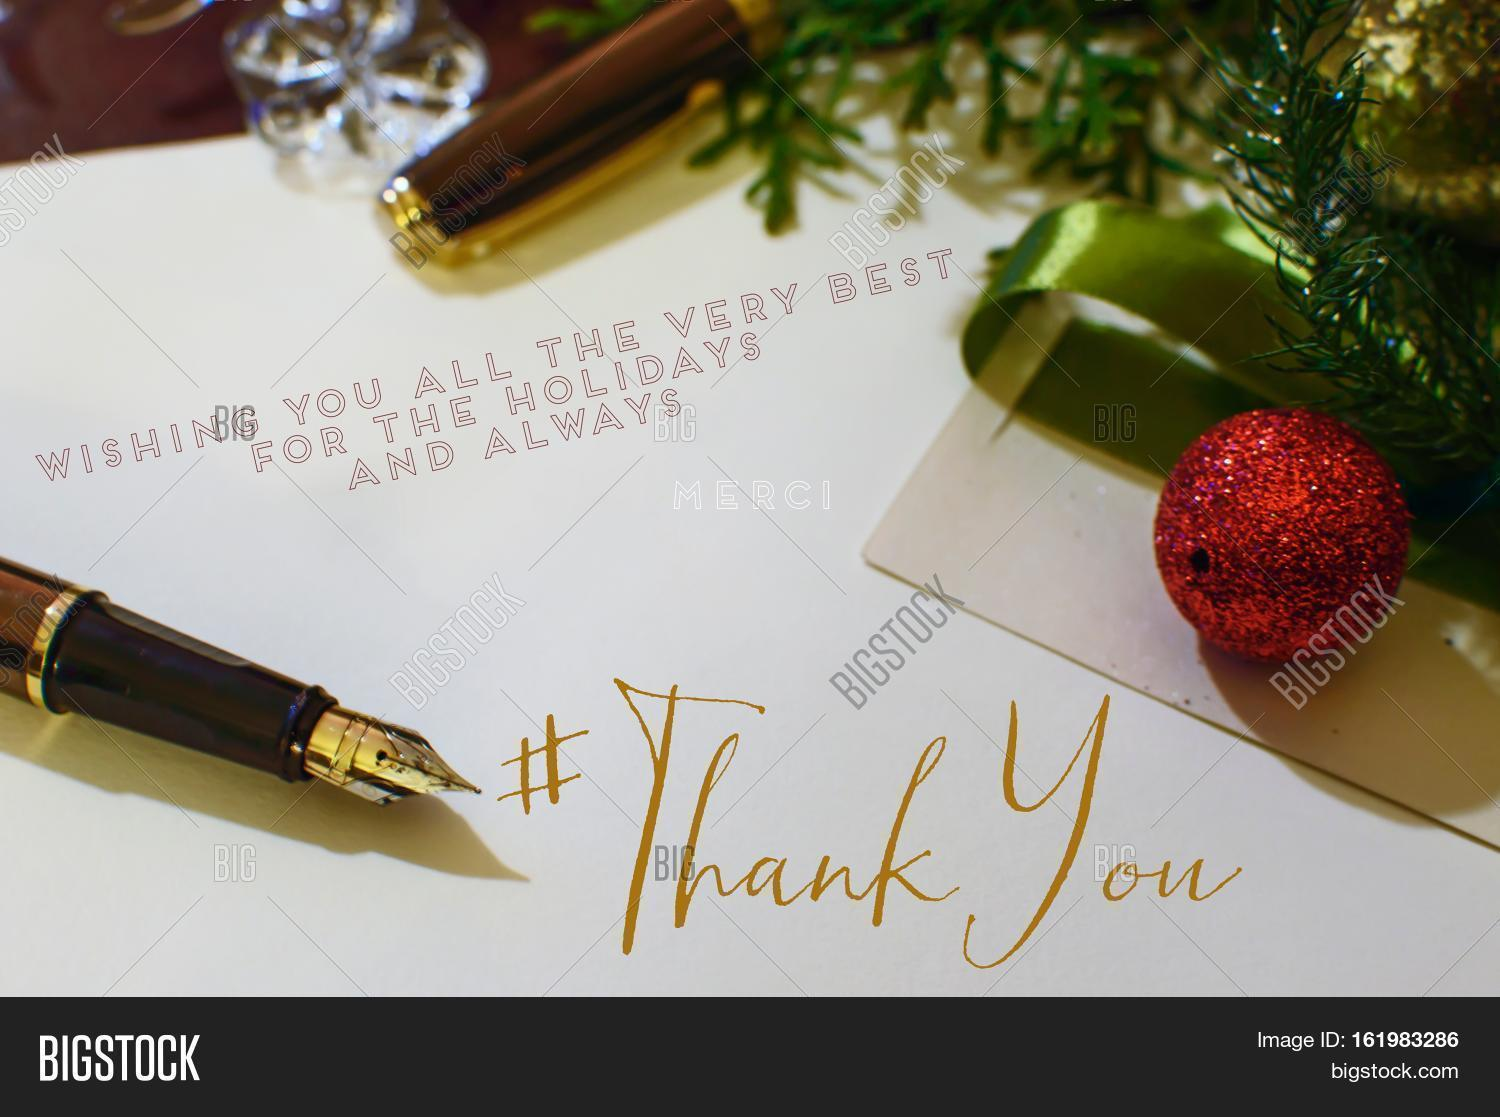 Christmas thank you image photo free trial bigstock christmas thank you card with hashtag to send seasons greetings to social network friends m4hsunfo